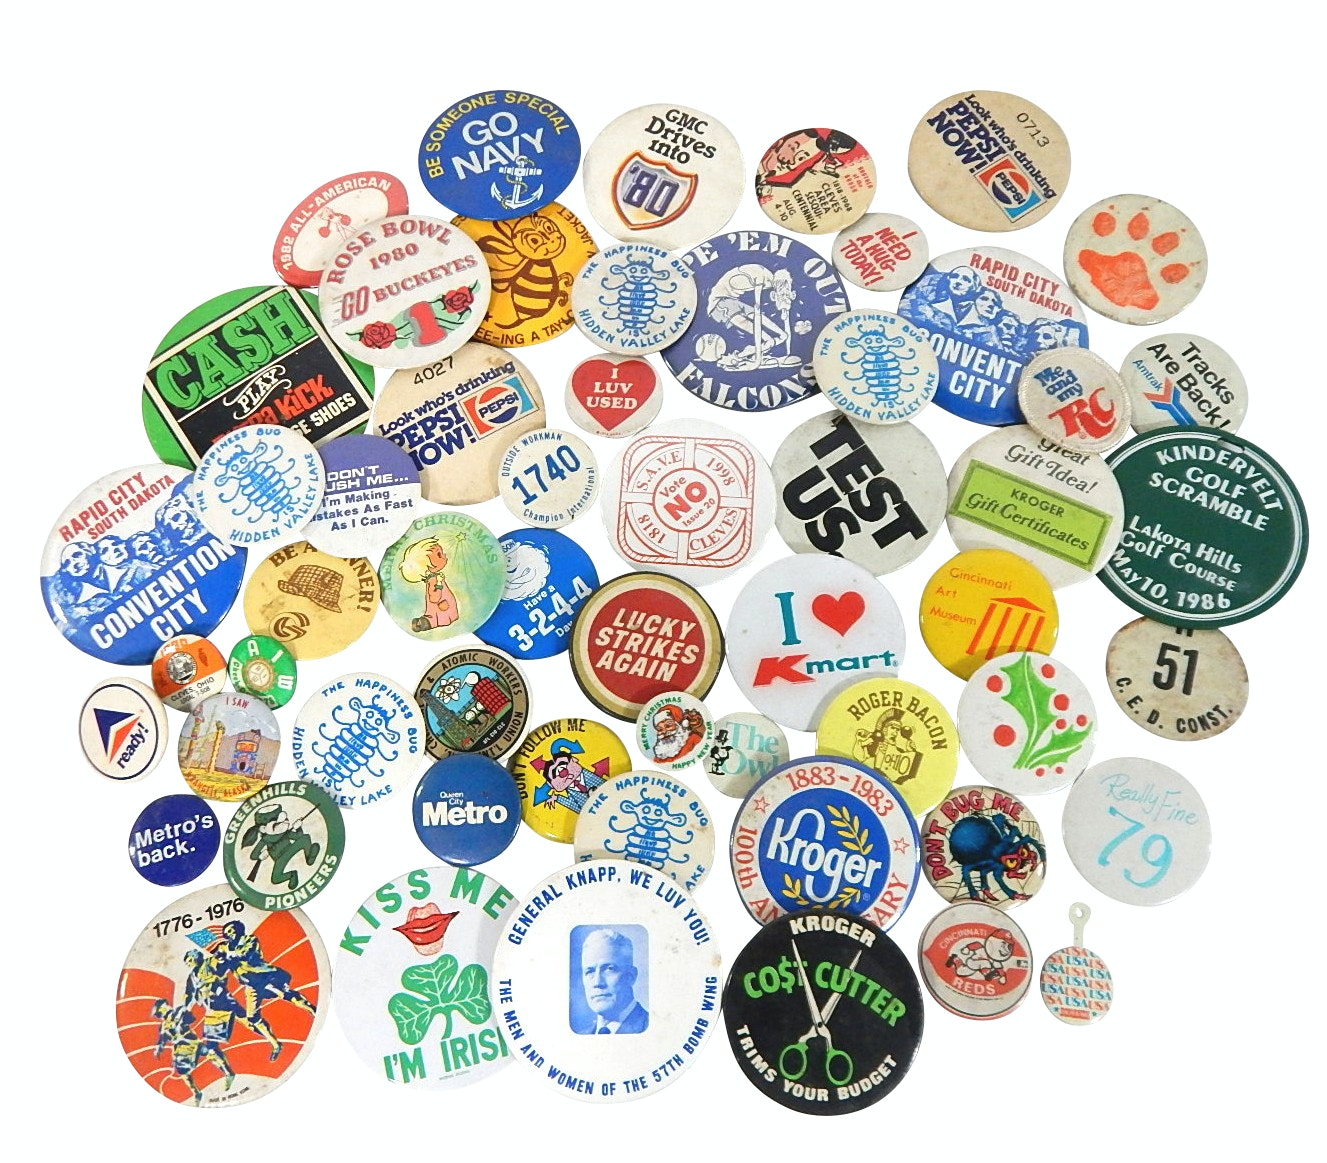 Vintage Pin-back Collection with Sports, Political, Advertising,Militaria Themes